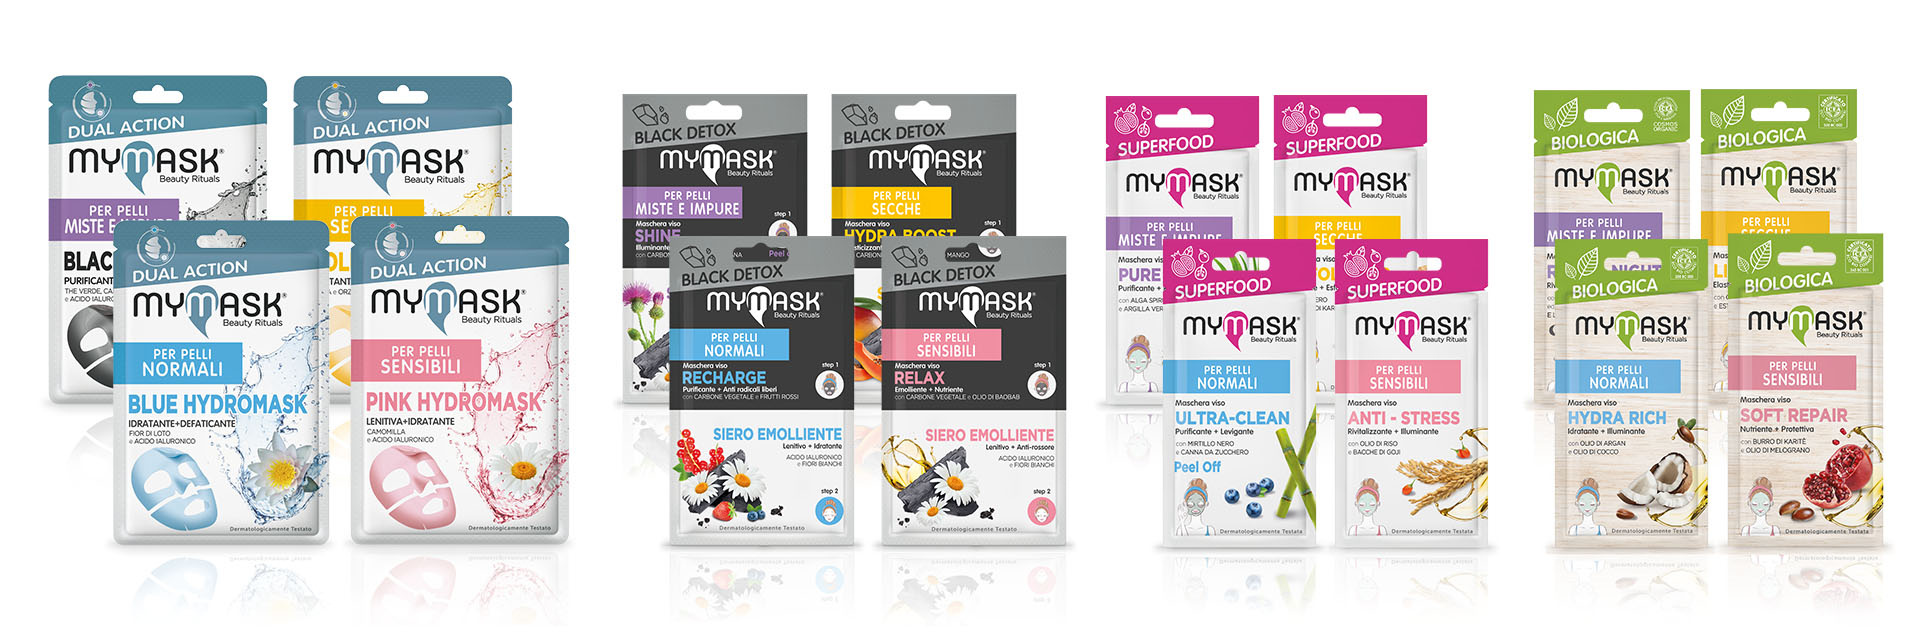 My Mask®: business product line.